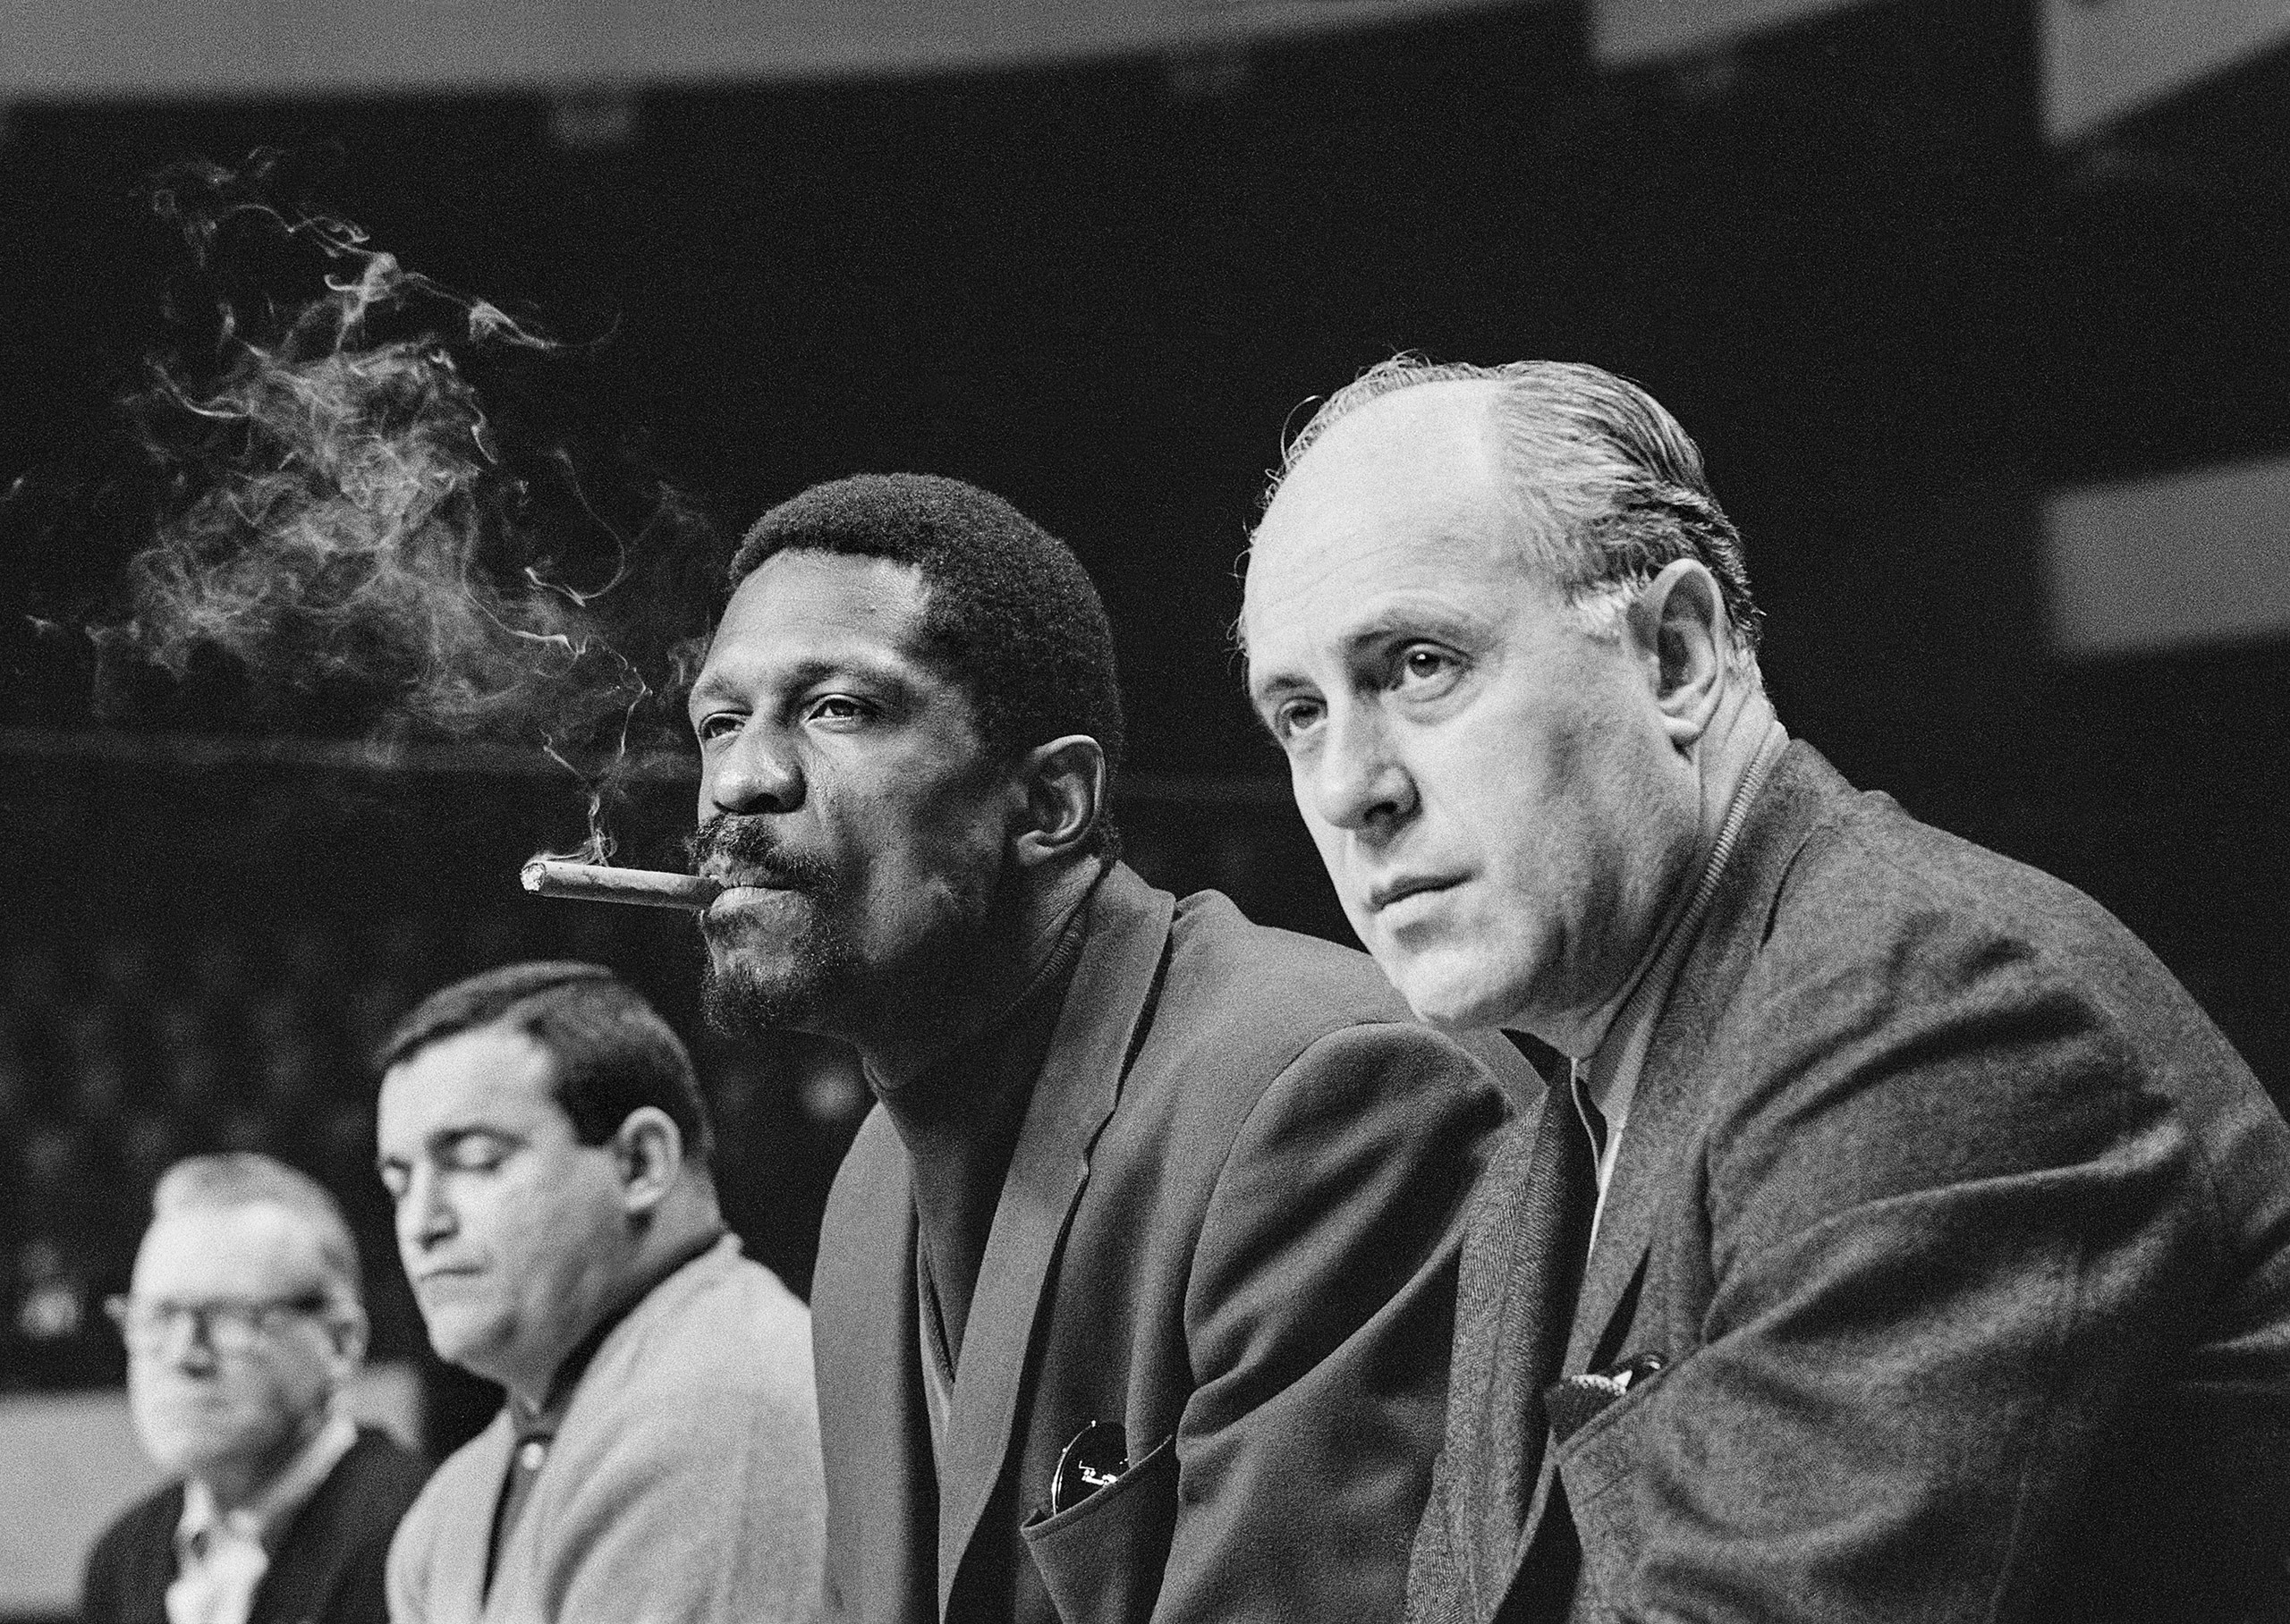 Boston Celtics' player-coach Bill Russell and team manager Red Auerbach, Boston, Mass., 1967.